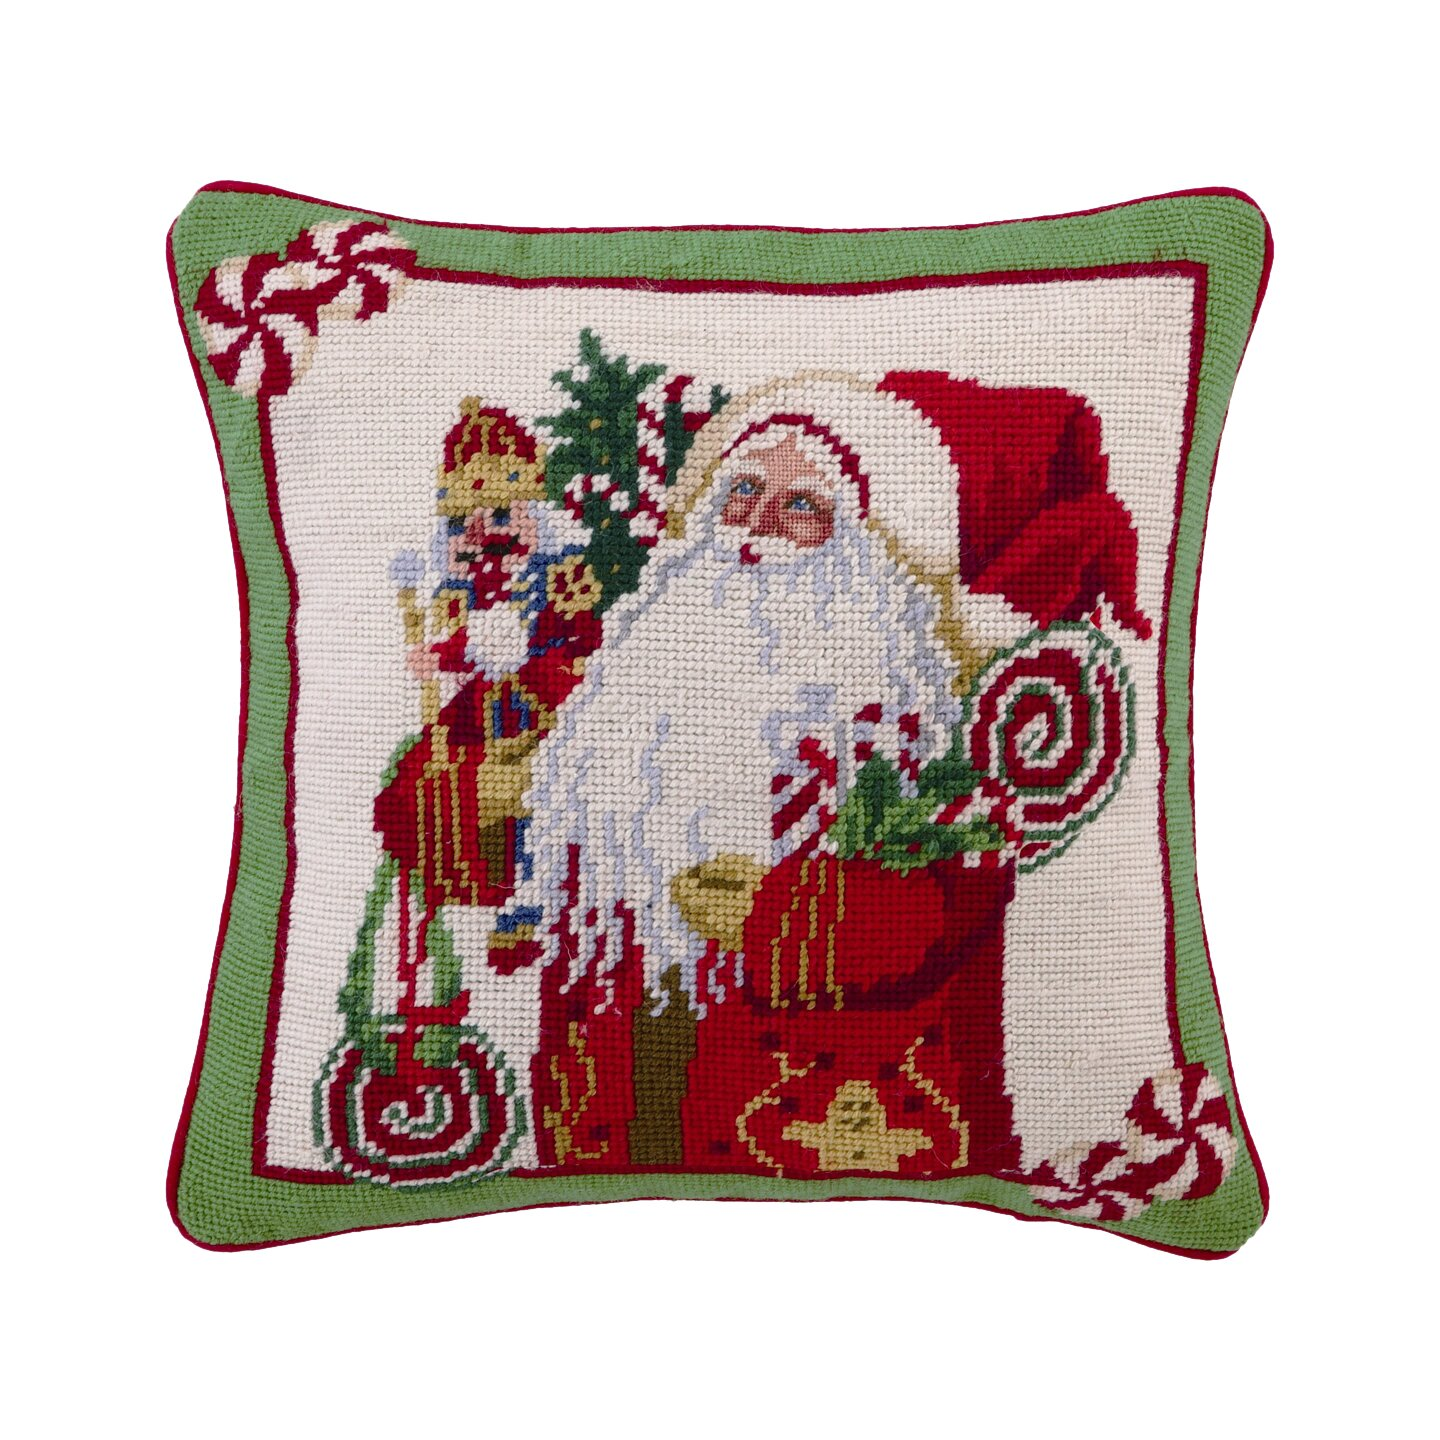 Needlepoint Pillow Decoration Crossword : Peking Handicraft Needlepoint Lolly Jolly Christmas Wool Throw Pillow & Reviews Wayfair